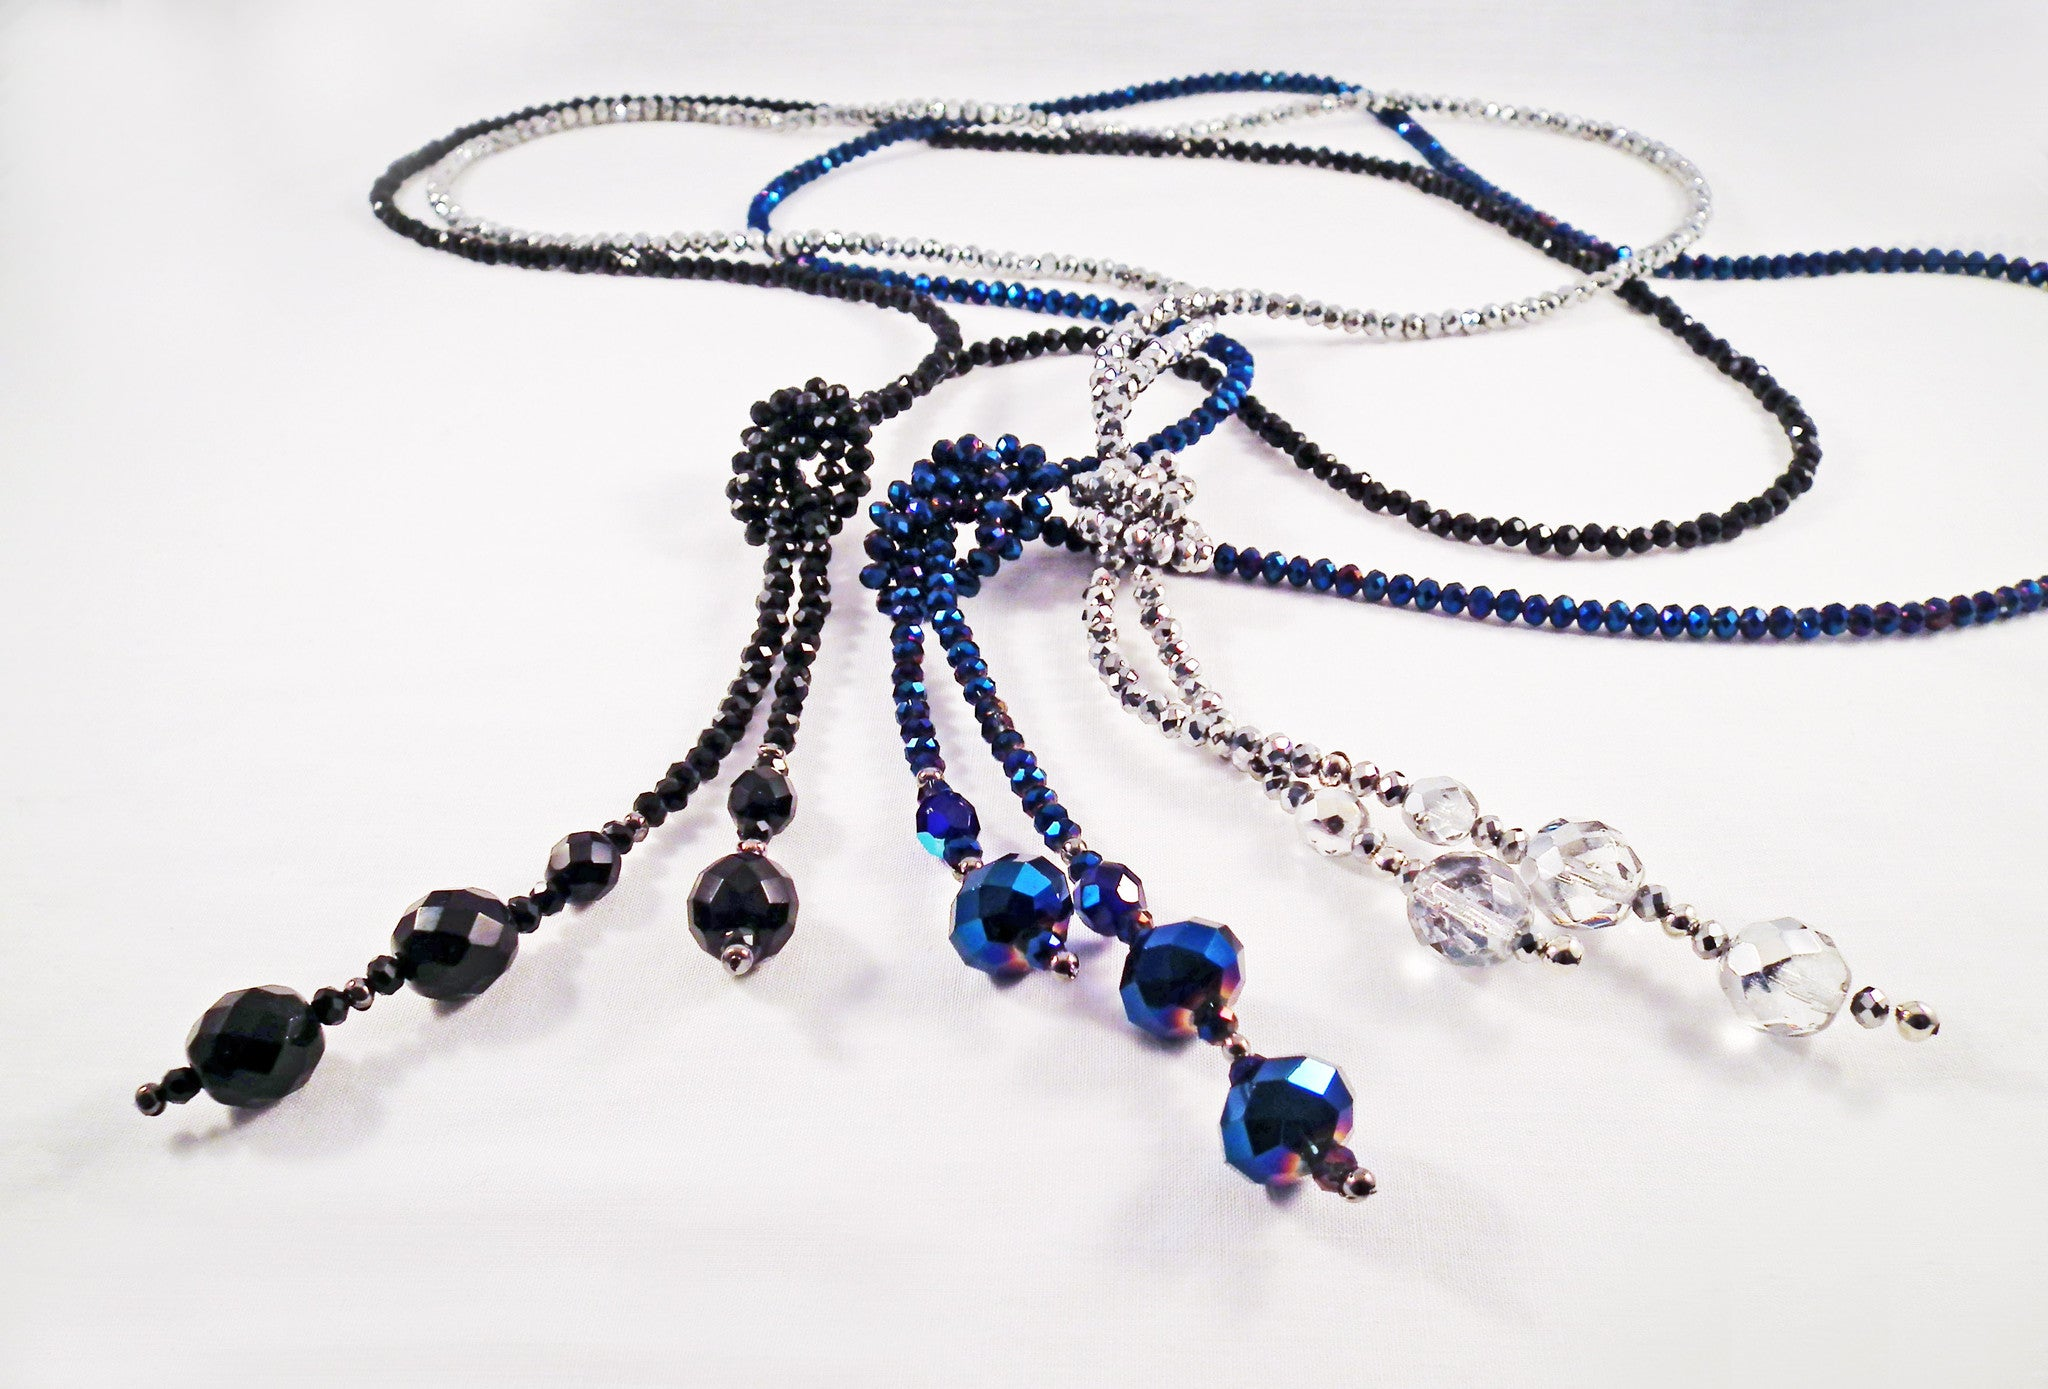 REF95 - Sautoirs à Noeud en Cristal SWAROVSKI Crystal Knot Necklaces - No Mercy Making